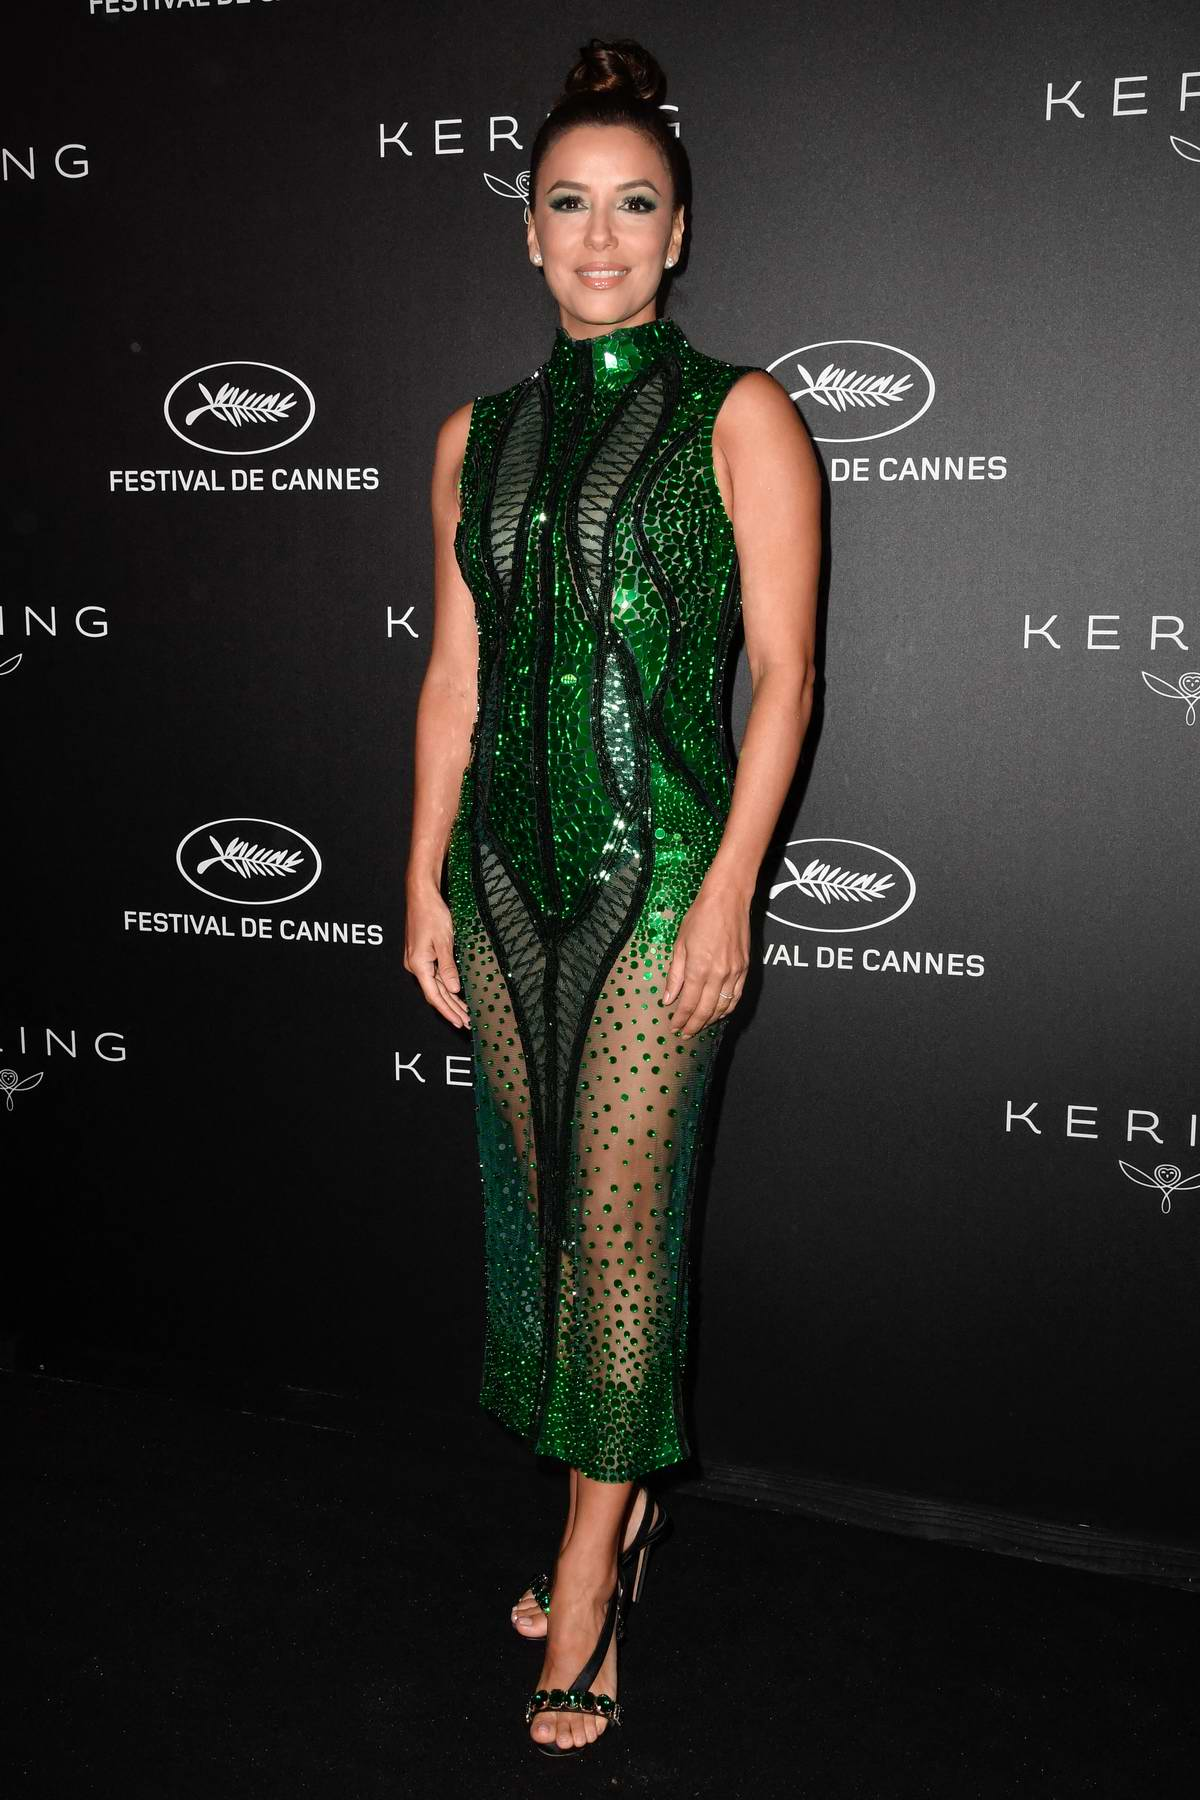 Eva Longoria attends the Kering Women In Motion Awards during the 72nd annual Cannes Film Festival in Cannes, France